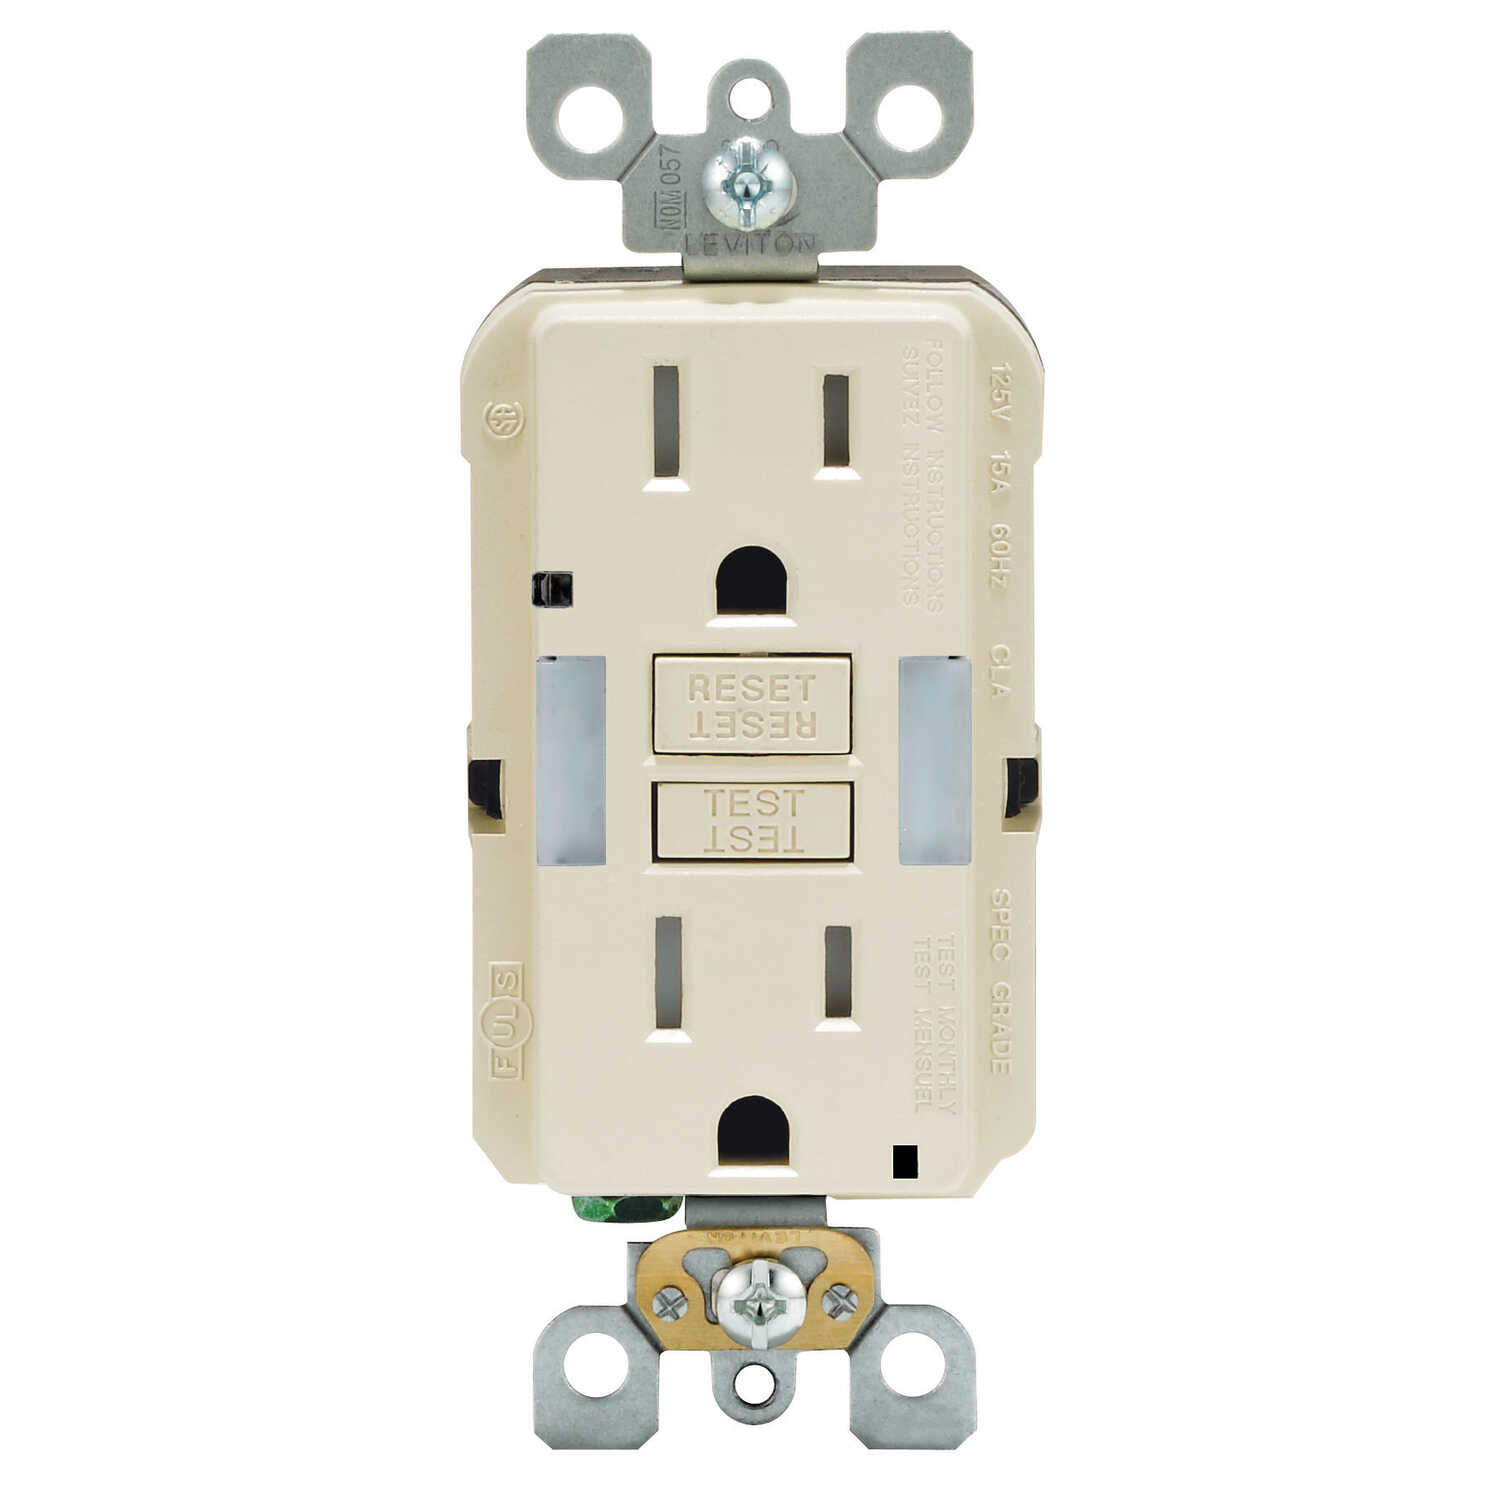 Leviton  15 amps 125 volt Duplex  Light Almond  GFCI Outlet  5-15R  1 pk